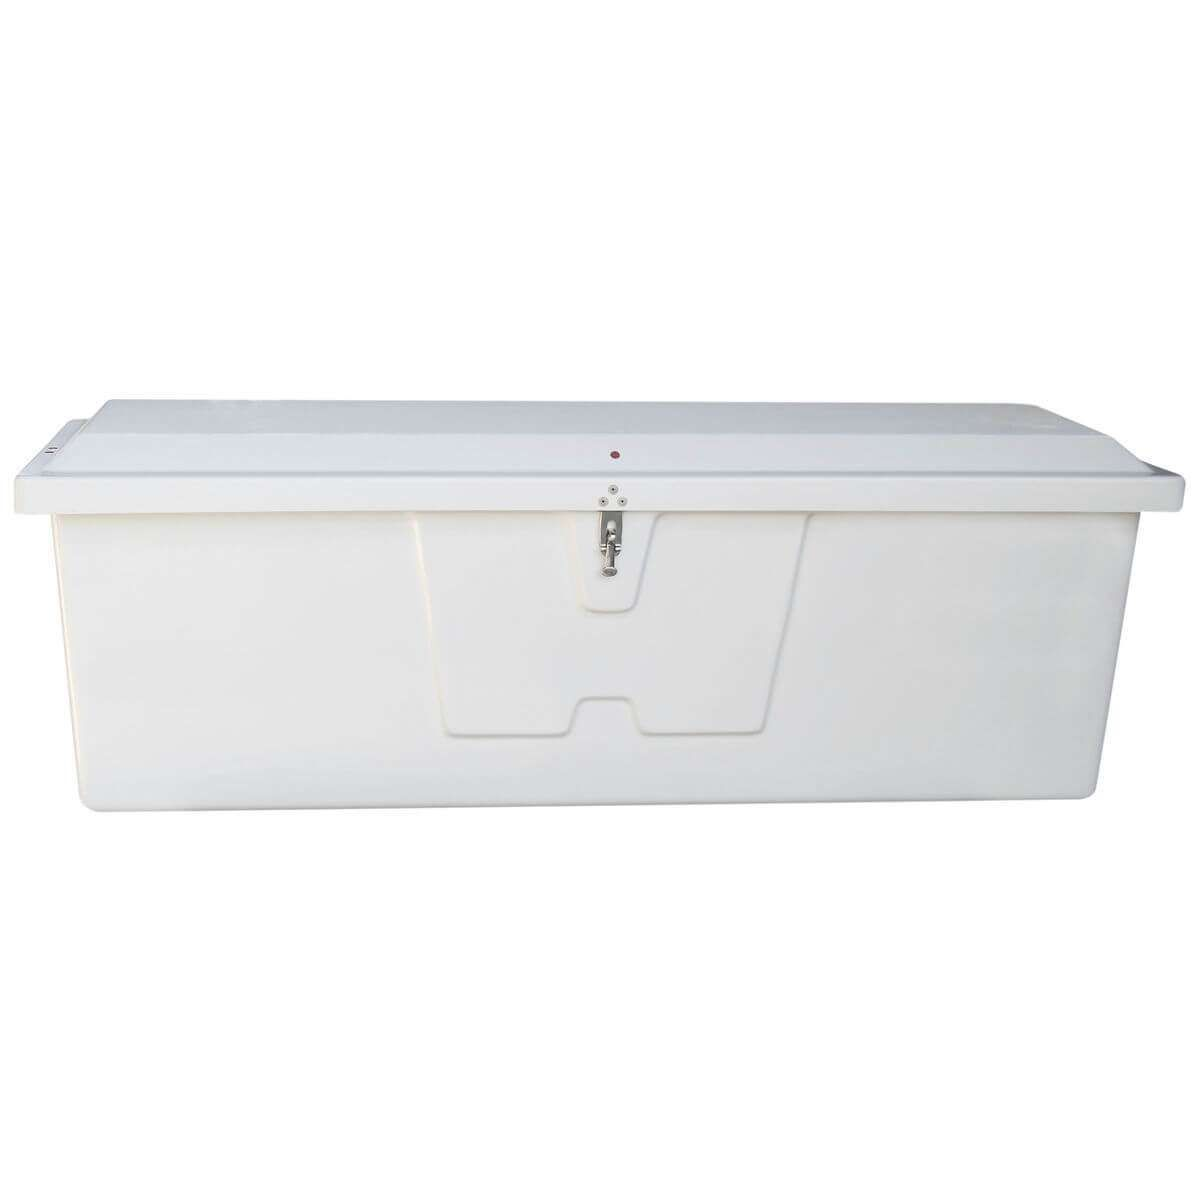 Marvelous Dock Storage Box / Fiberglass   83562